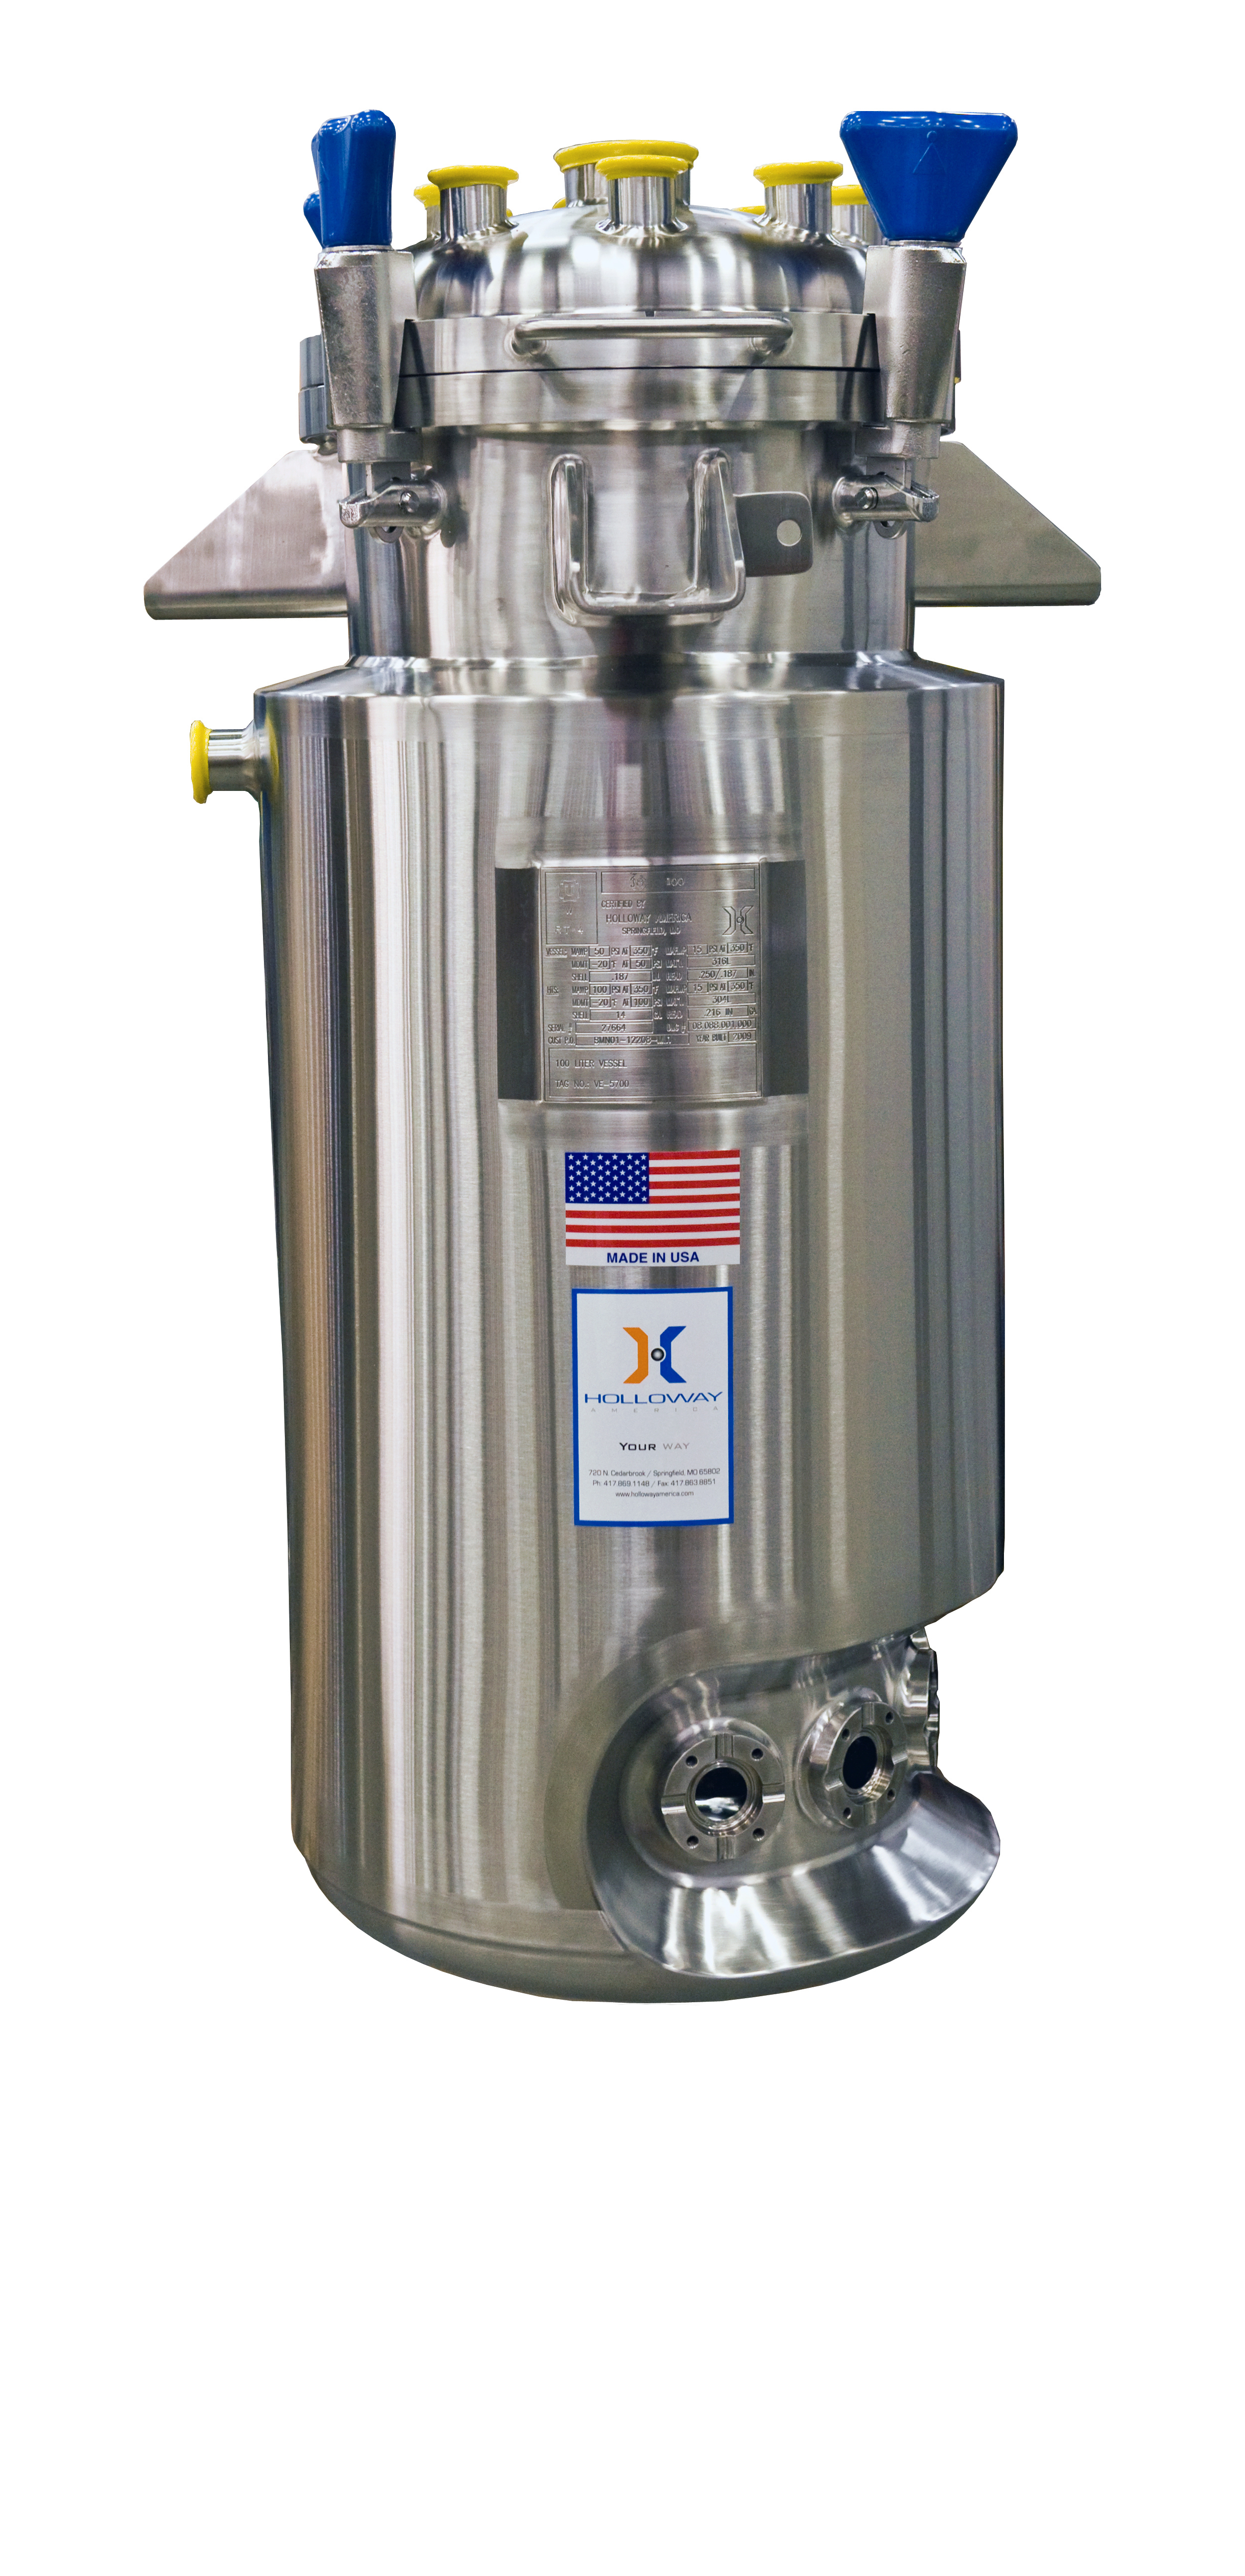 So you can adhere to stainless steel ASME code standards, invest in our ASME pressure vessels and tanks.